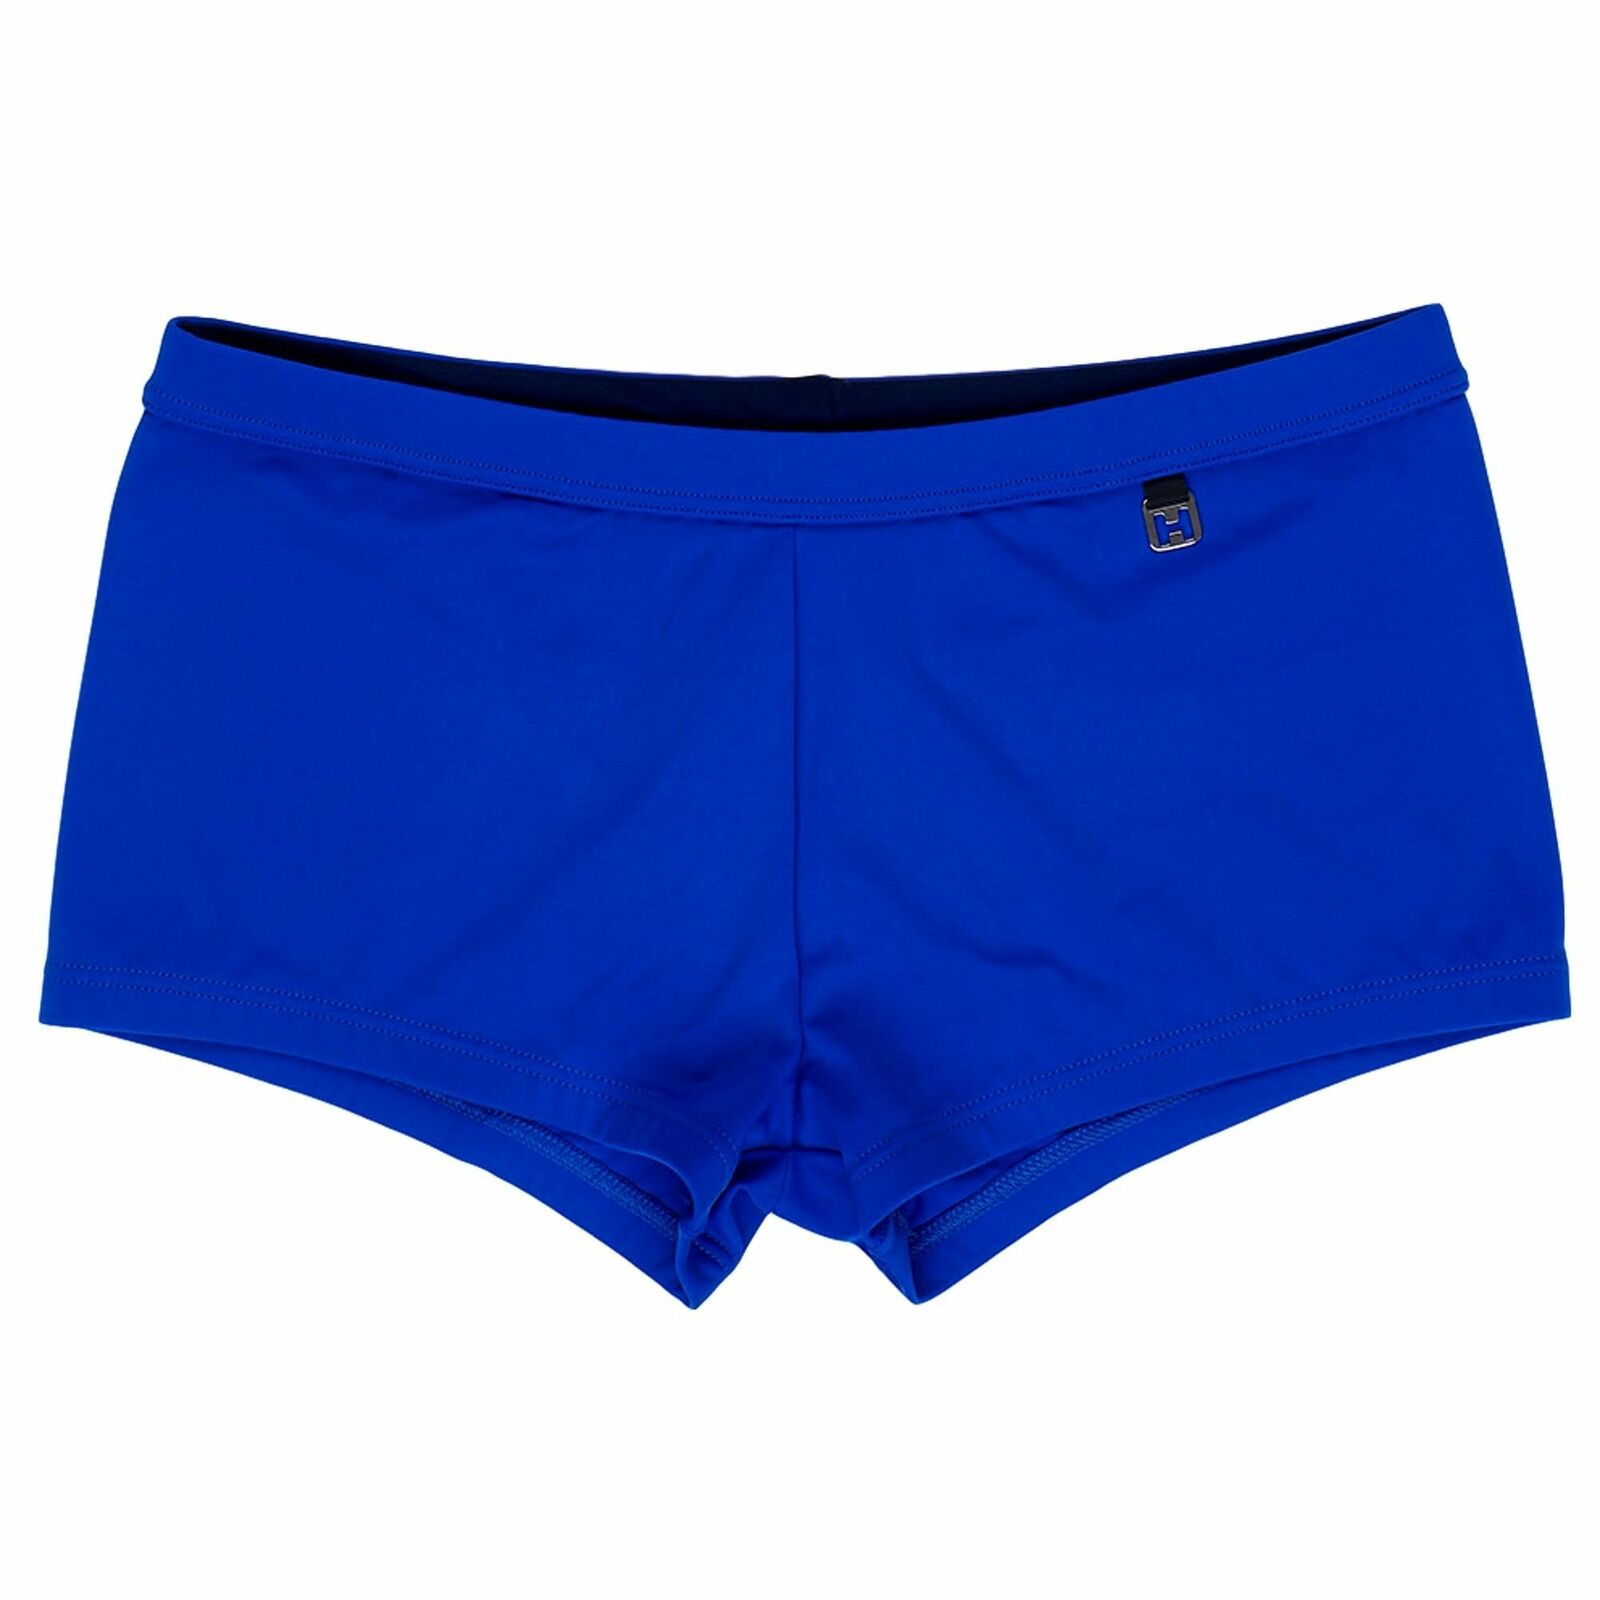 HOM Sunlight Swim Short - Electric bluee